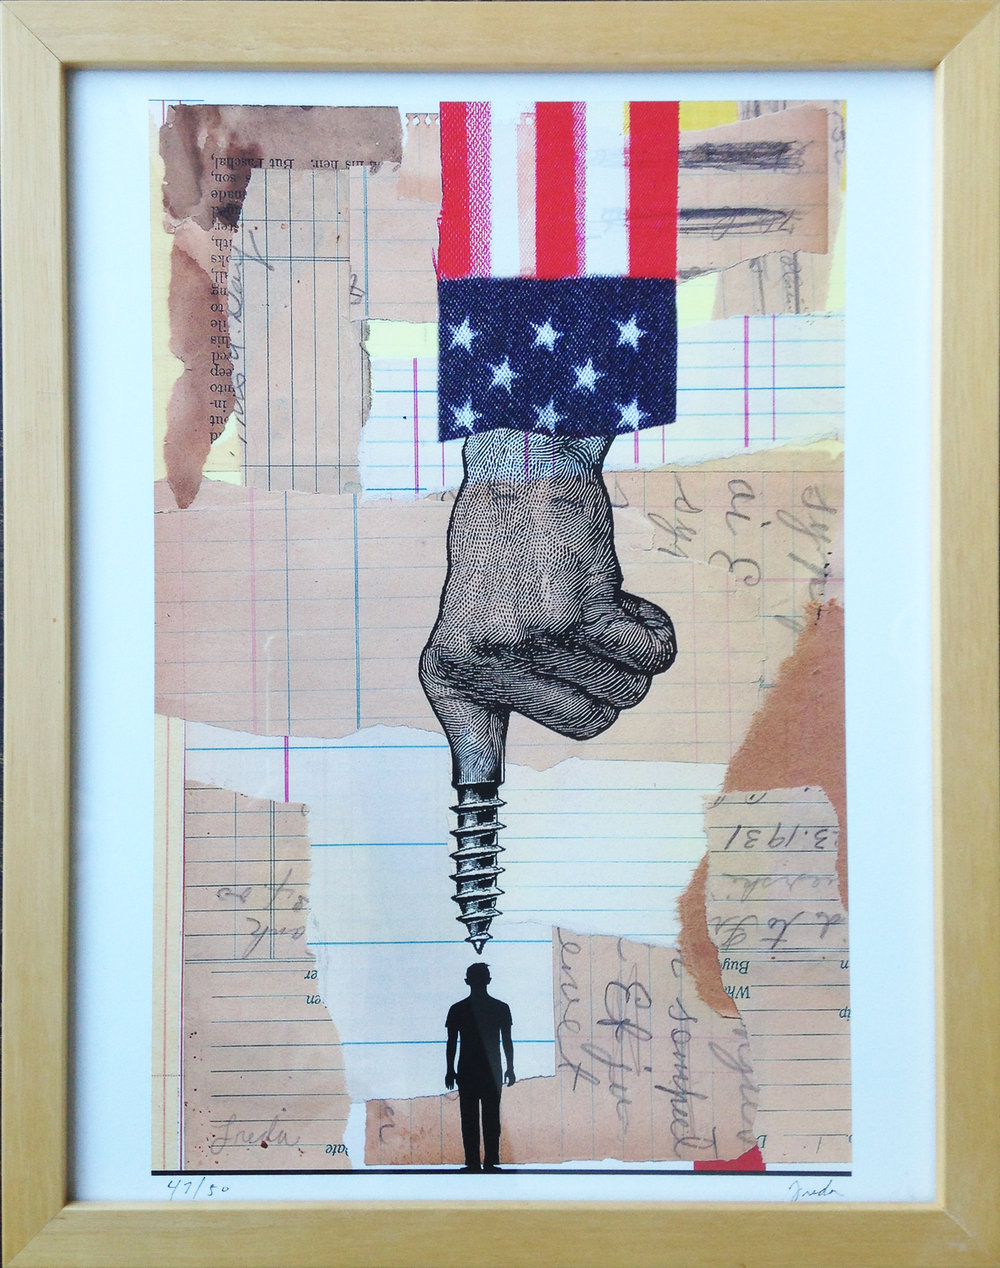 """Screwed"" by Anthony Freda Print on Paper 8.5"" by 13"""